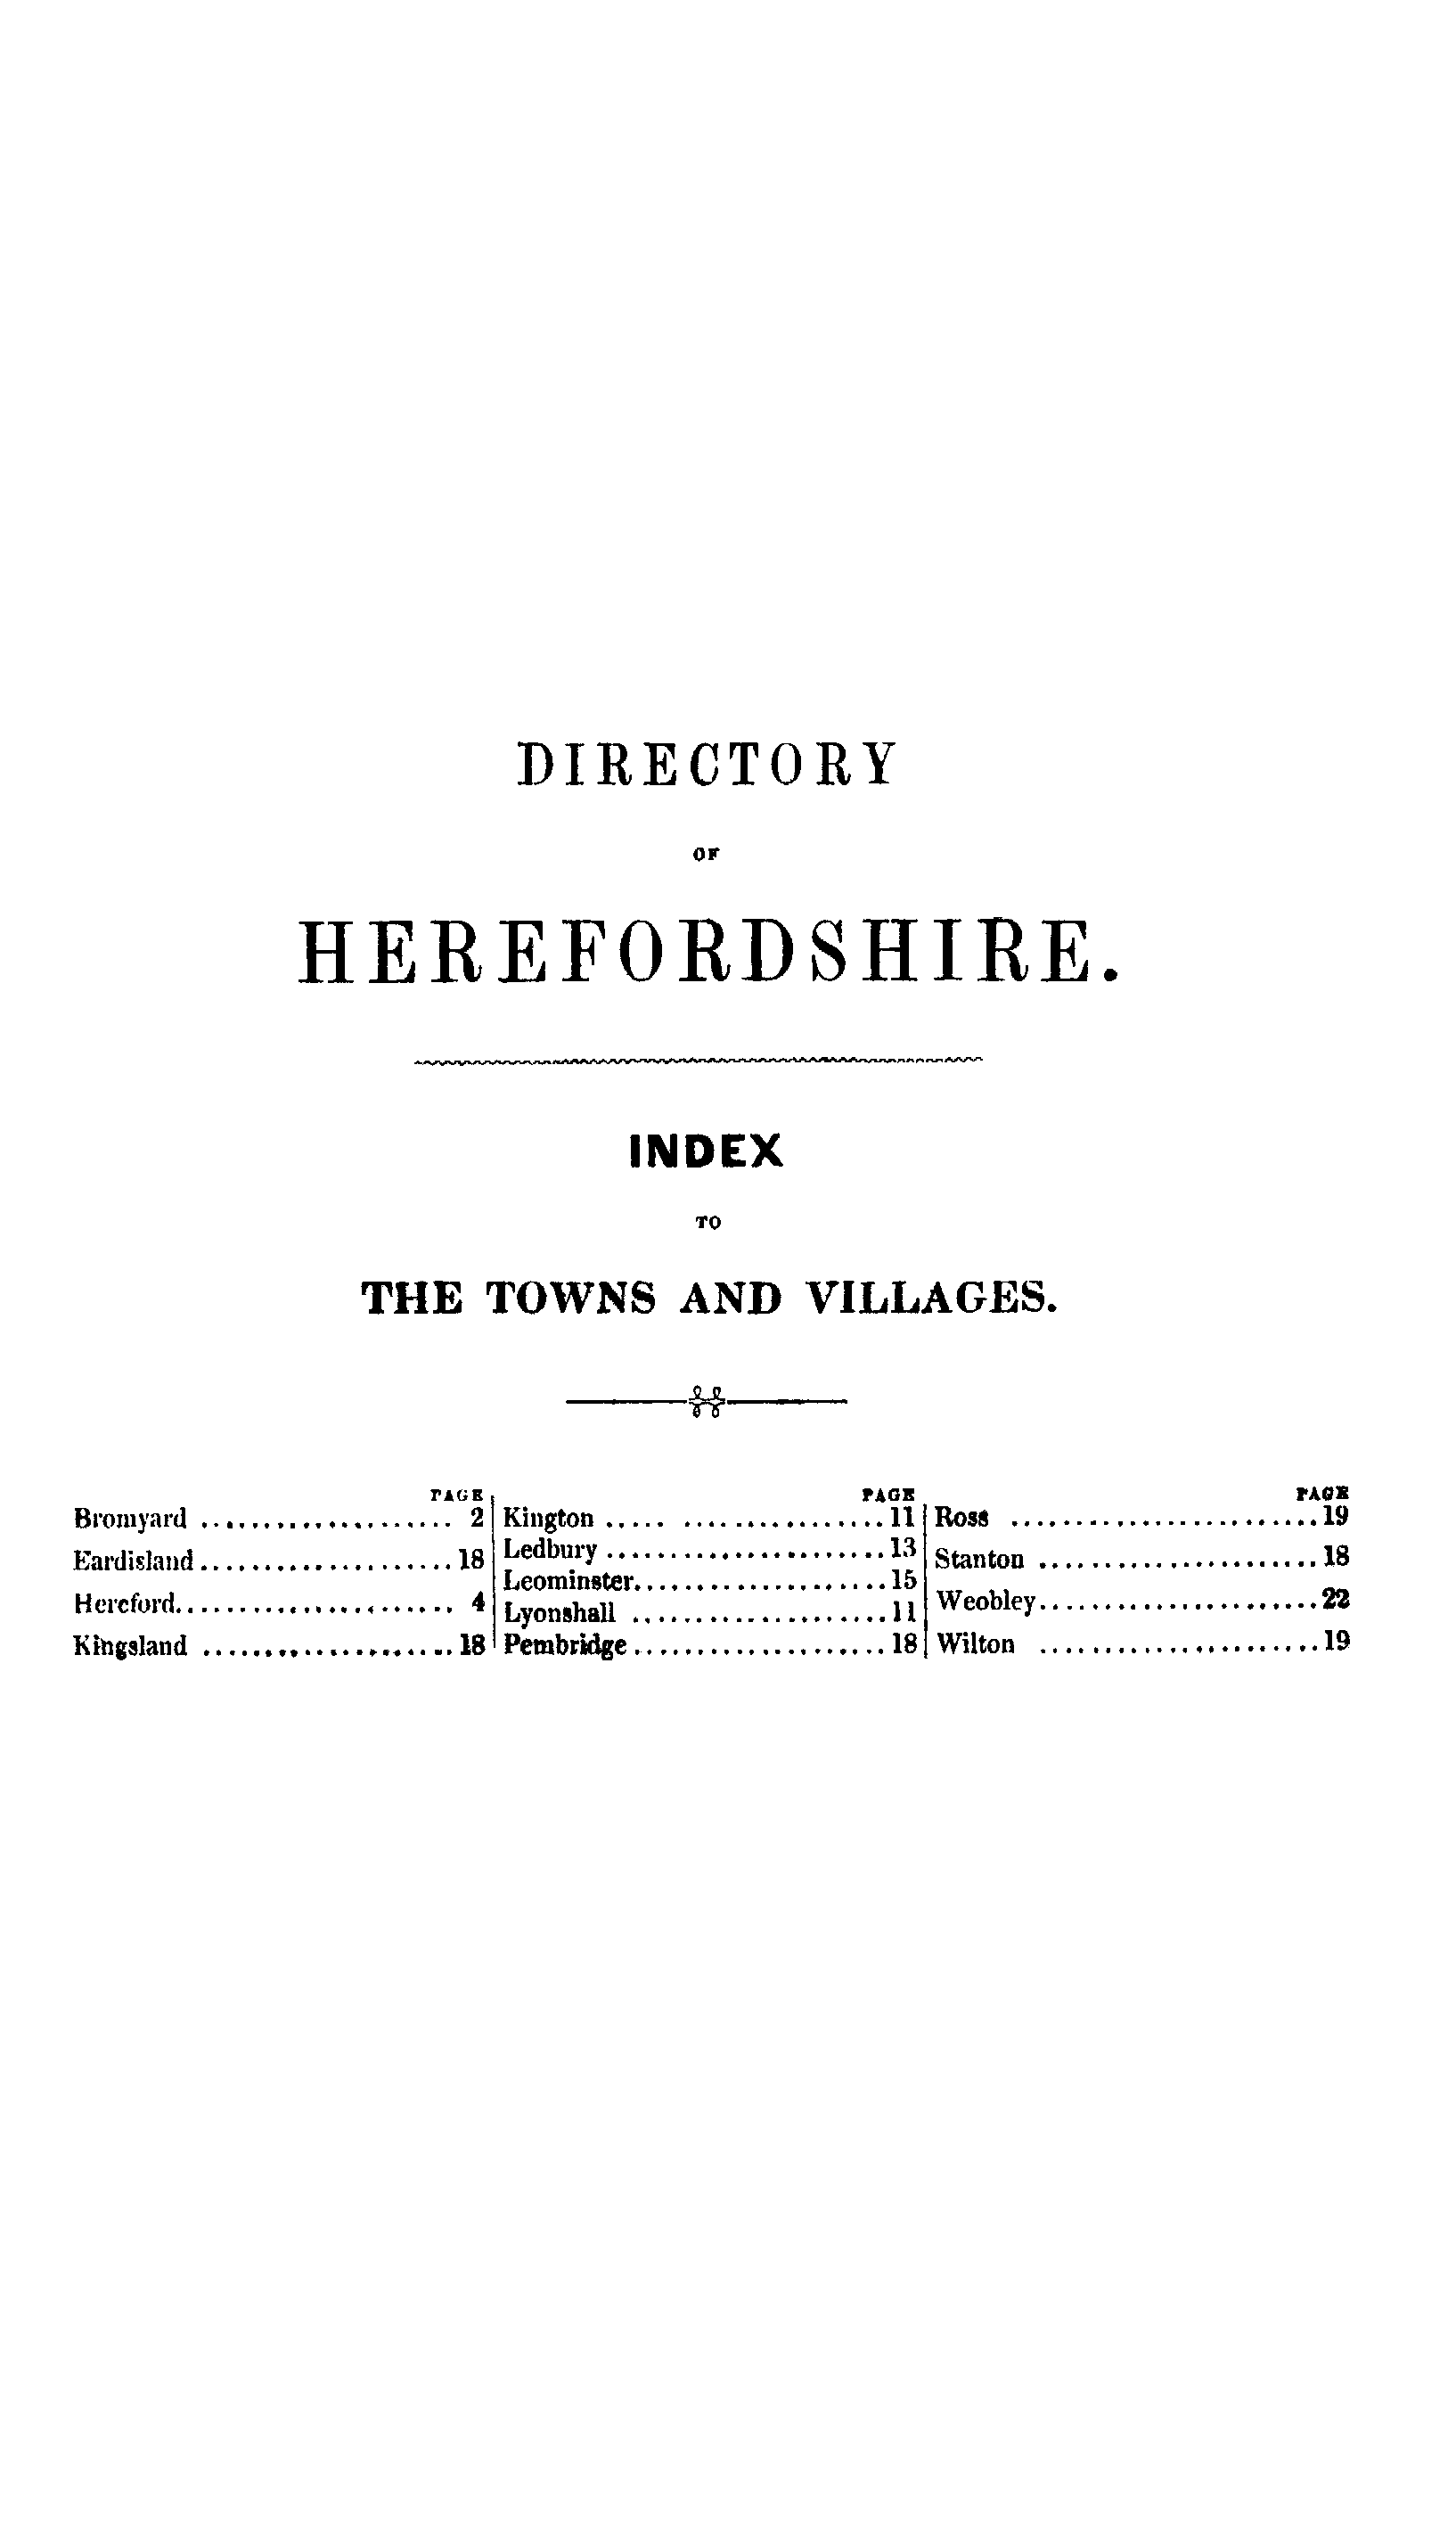 Pigot Directory of Herefordshire, 1842 page index - click to open larger version in a new window